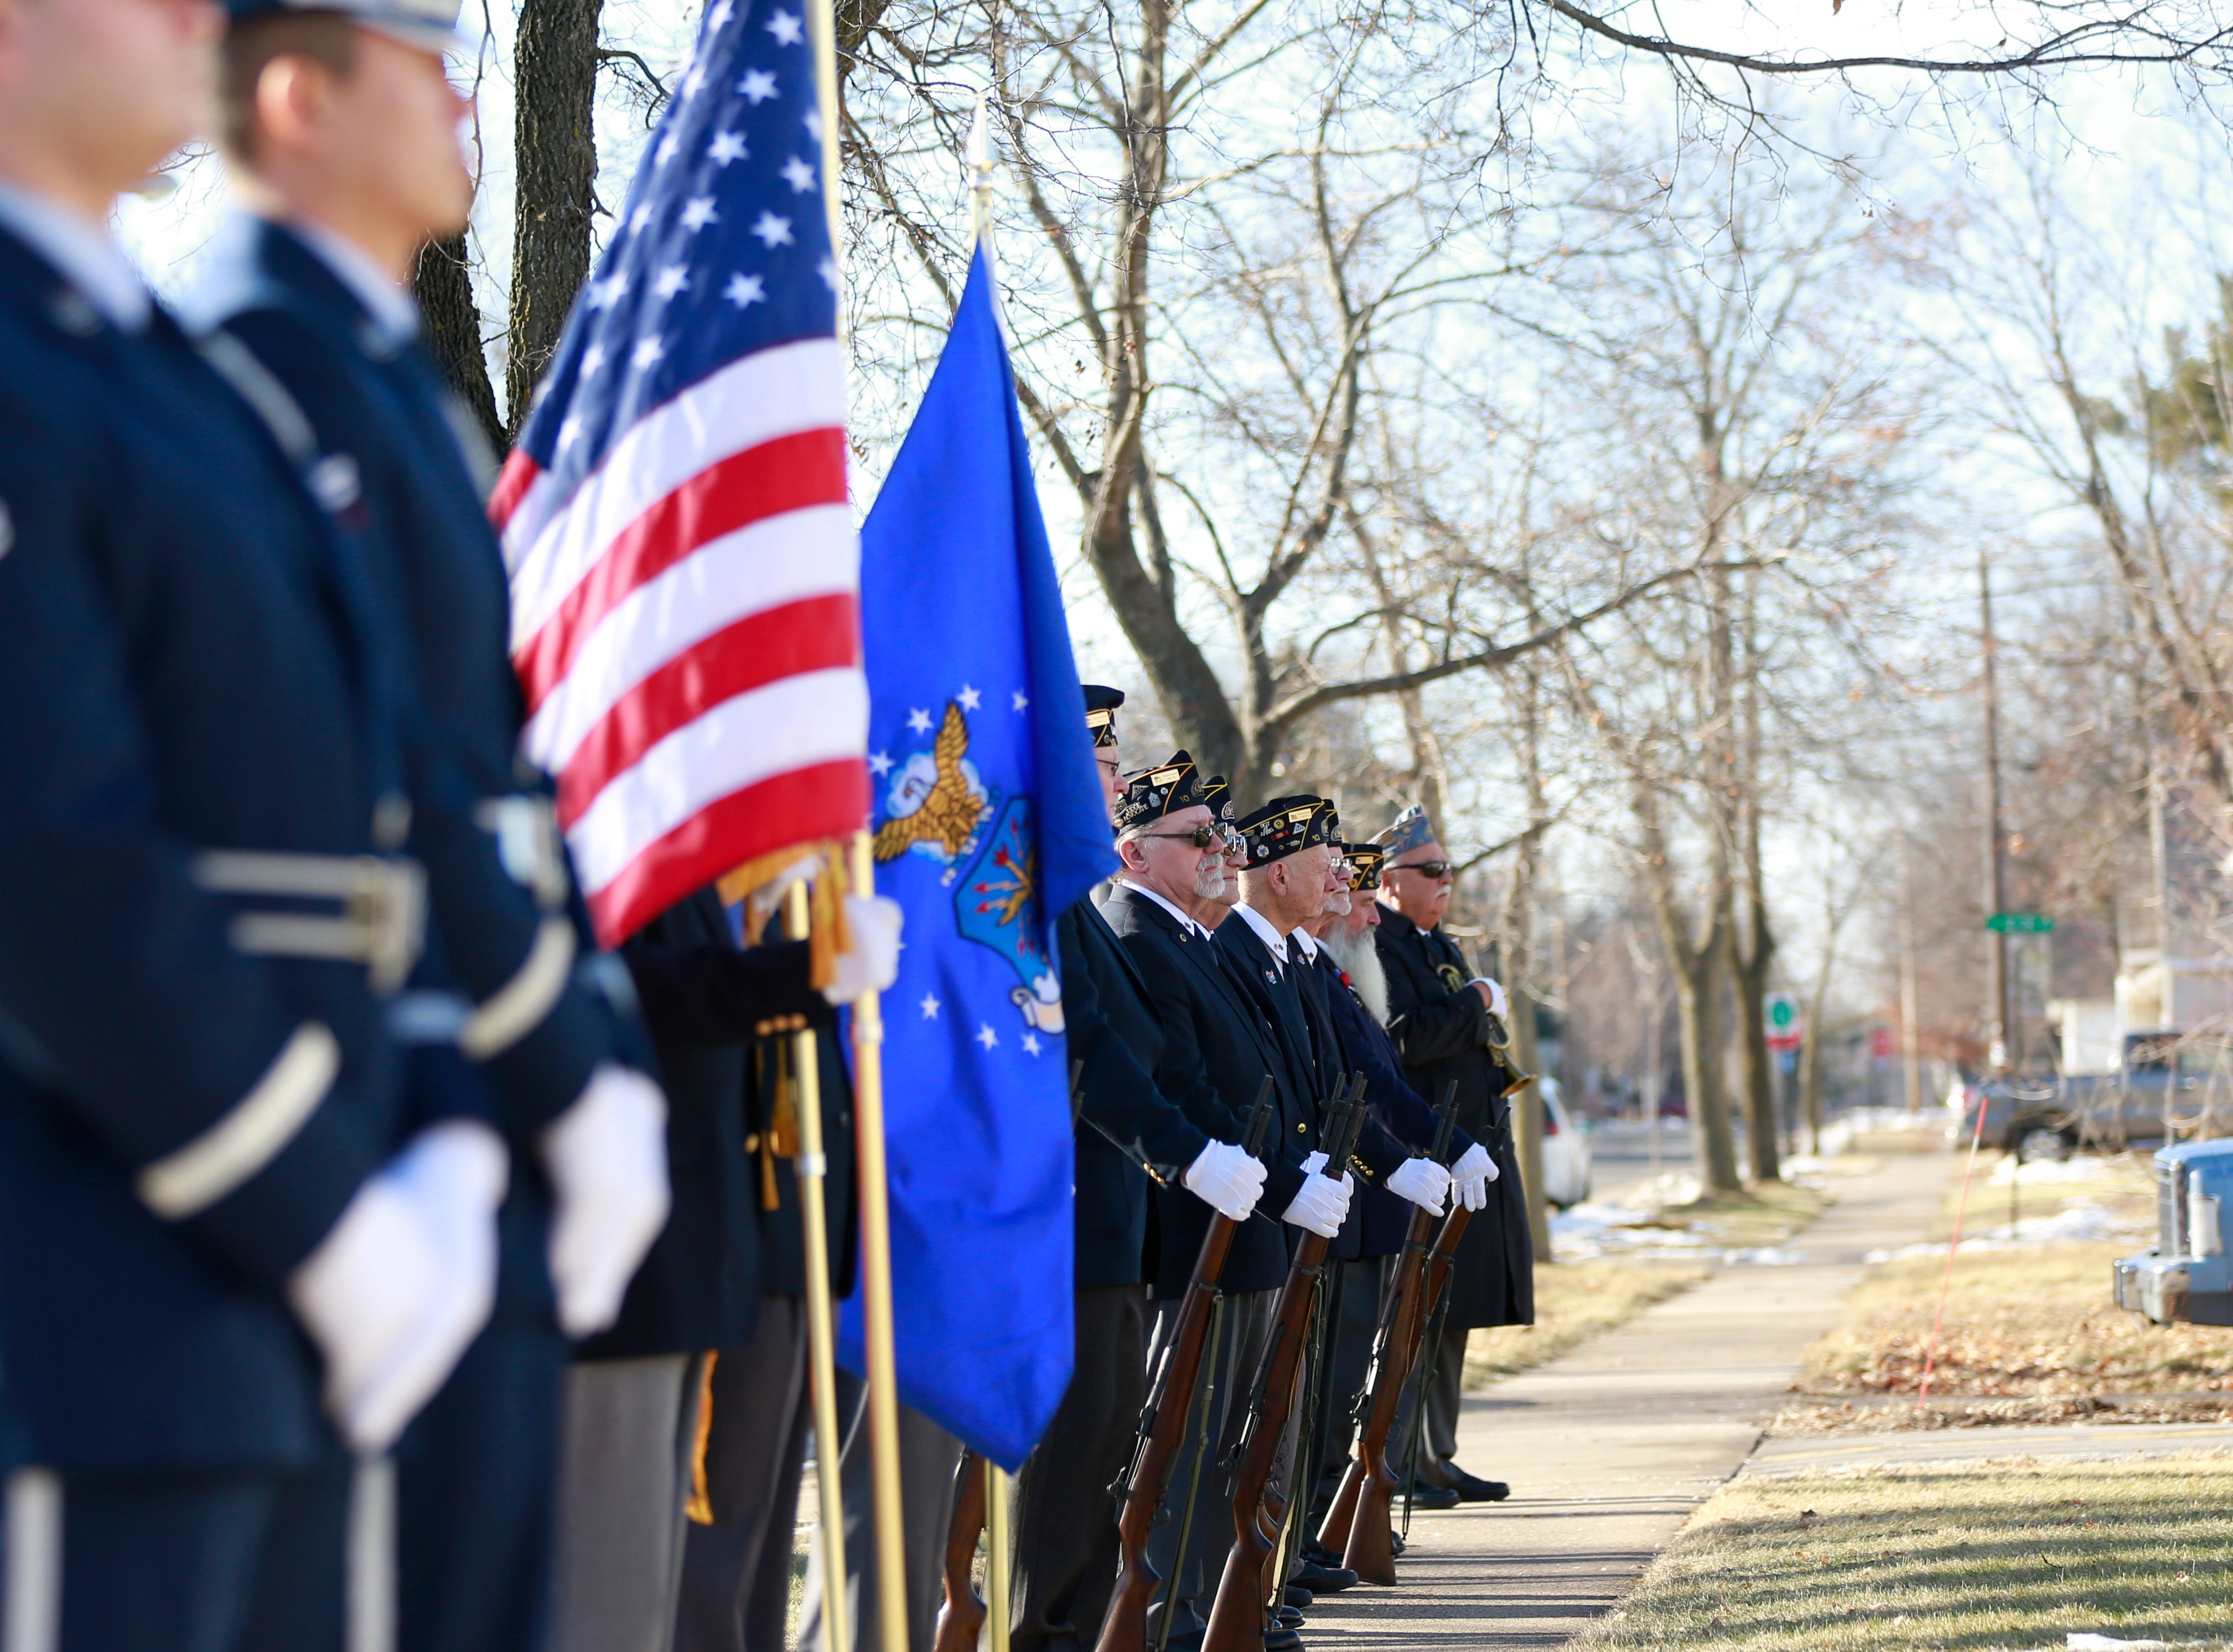 American Legion Montgomery-Plant-Dudley Post 10 and United States Air Force honor former Sen. Walter Chilsen during his funeral service Friday, Jan. 04, 2019, at Holy Name of Jesus Parish in Wausau, Wisc. T'xer Zhon Kha/USA TODAY NETWORK-Wisconsin